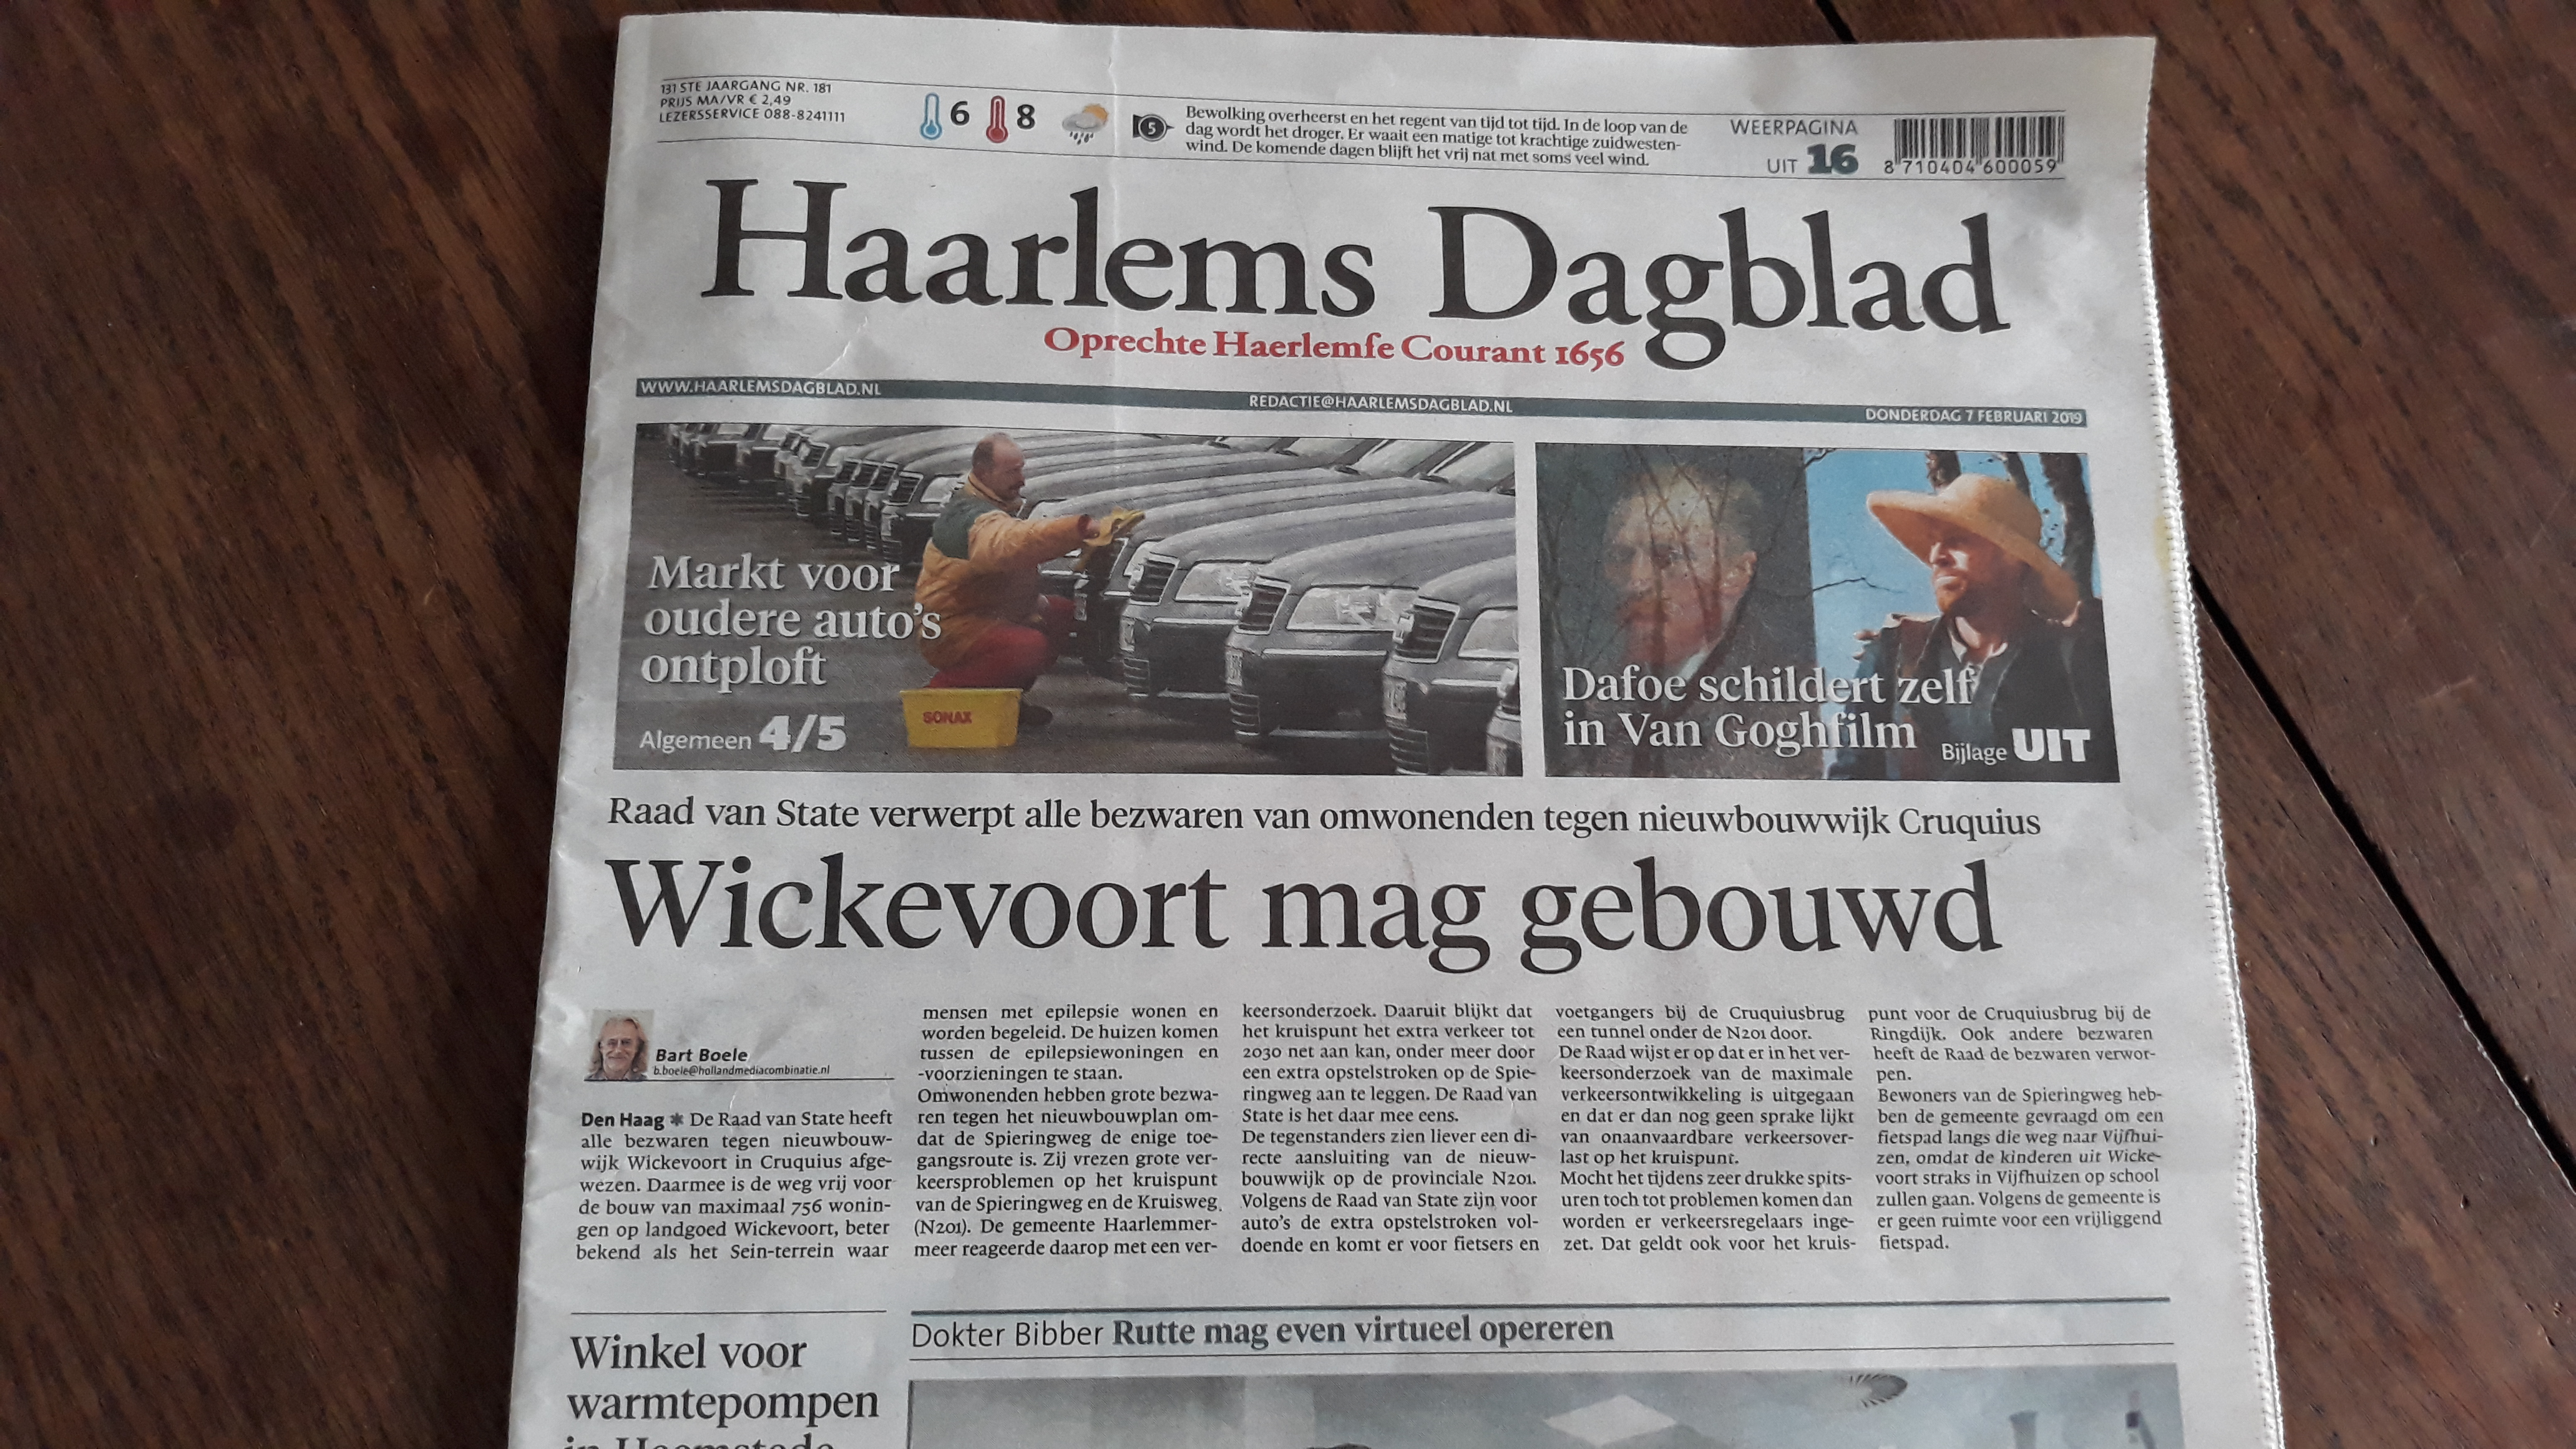 2019 02 07 Haarlems Dagblad